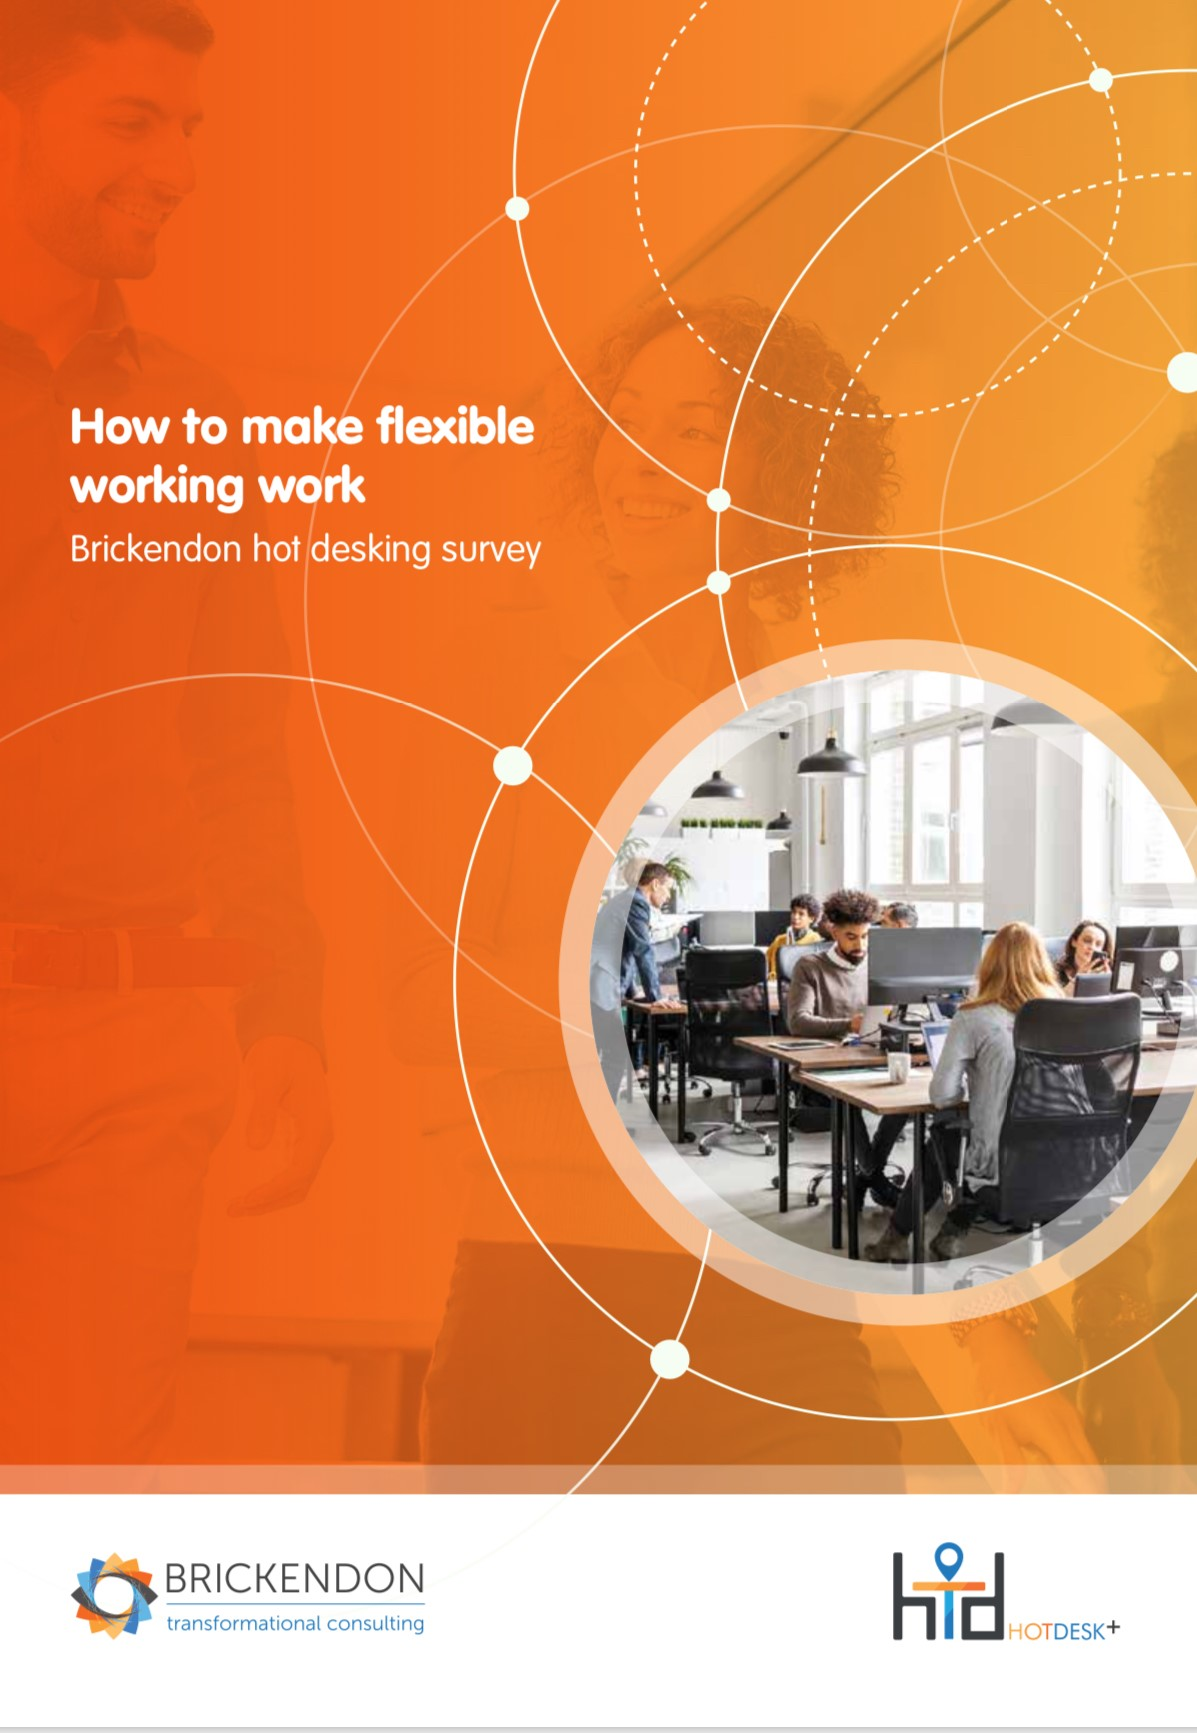 How to make flexible working work: Brickendon hot desking survey